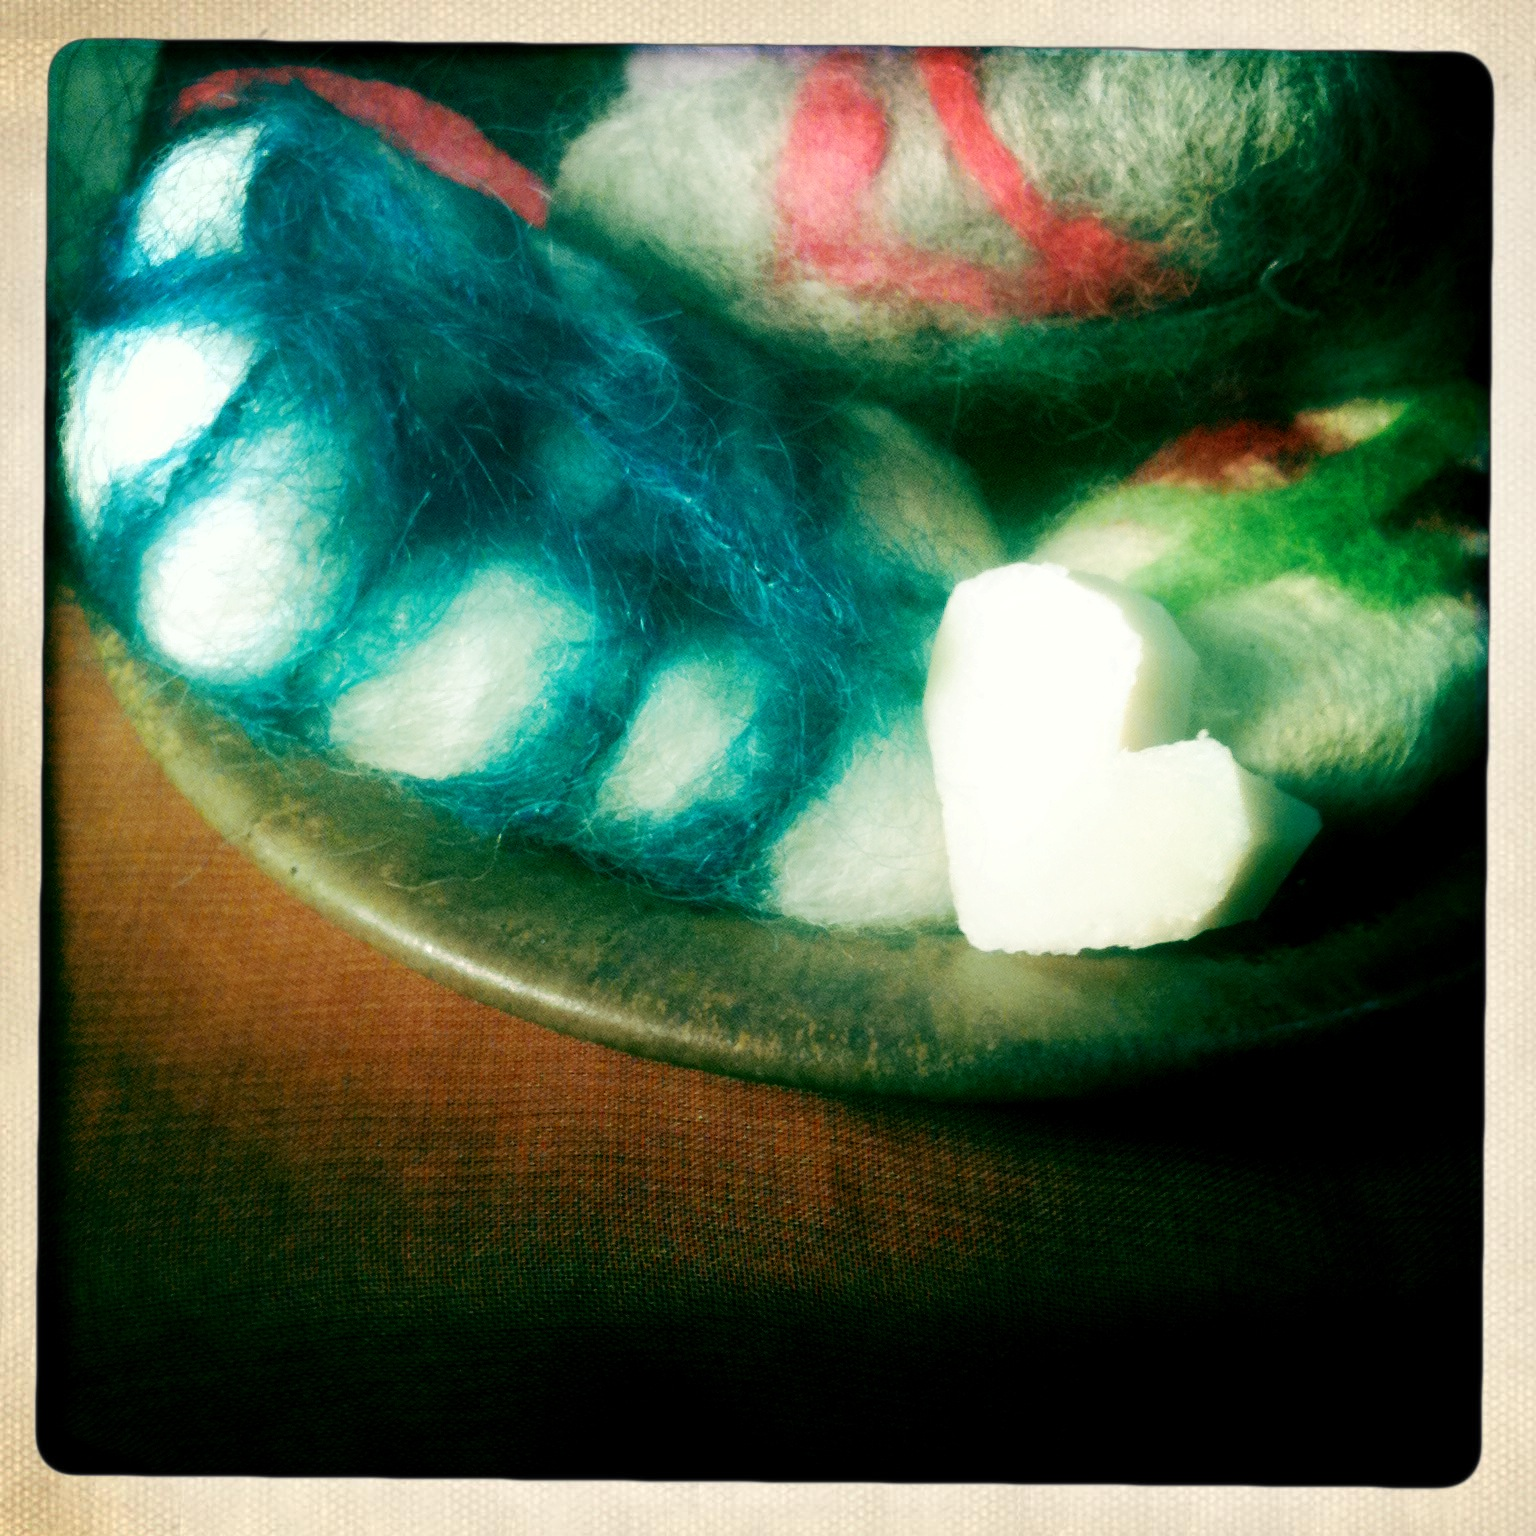 Wet-felted soaps are a fun way to learn the process, and are great in the tub!